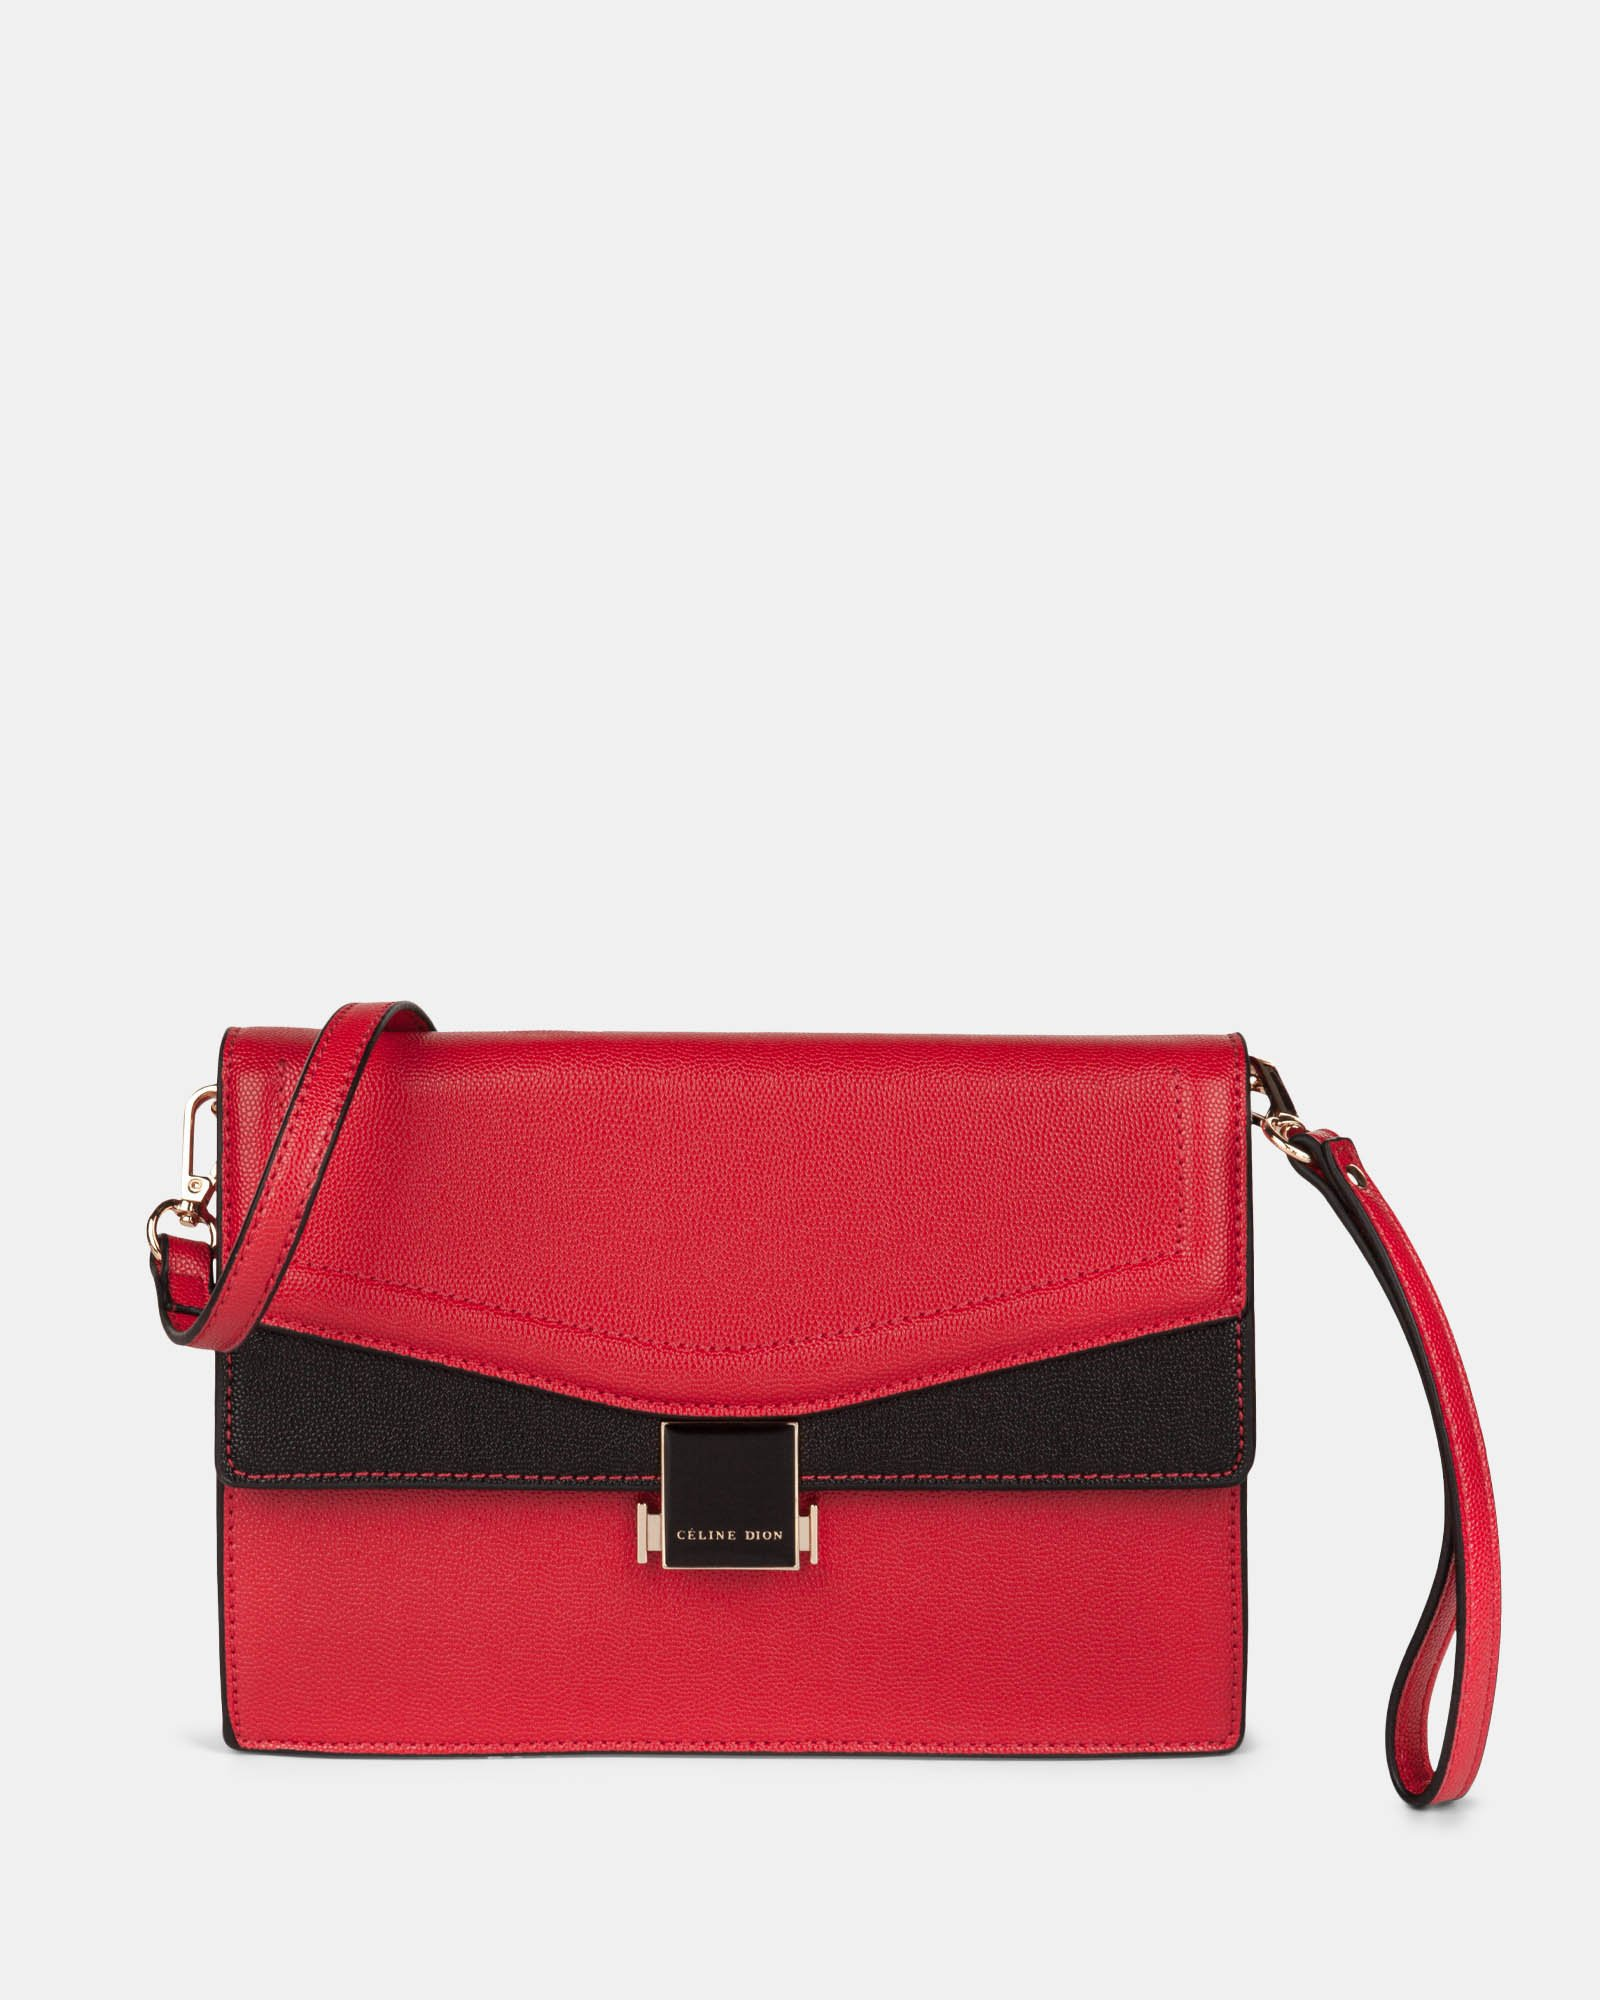 Scale – Clutch bag with Back easy access pocket - Red - Céline Dion - Zoom